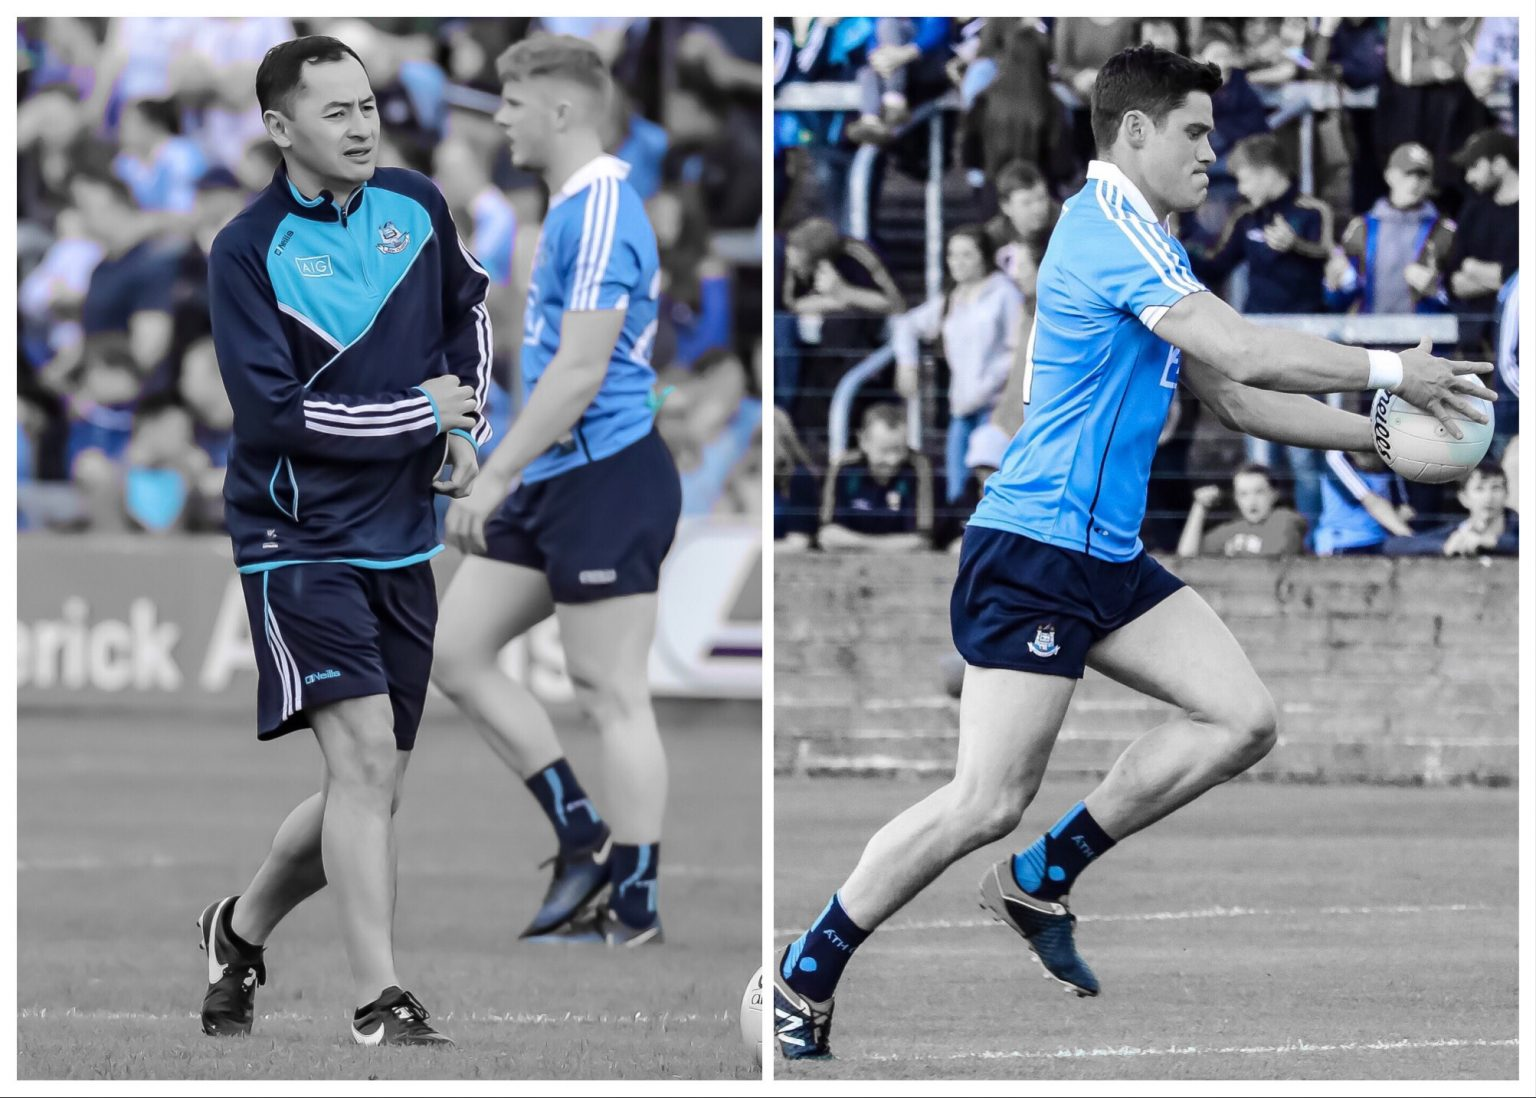 Dublin coach Jason Sherlock in a Navy and blue top and navy shorts and Dublin player Diarmuid Connolly in a sky blue jersey and navy shorts